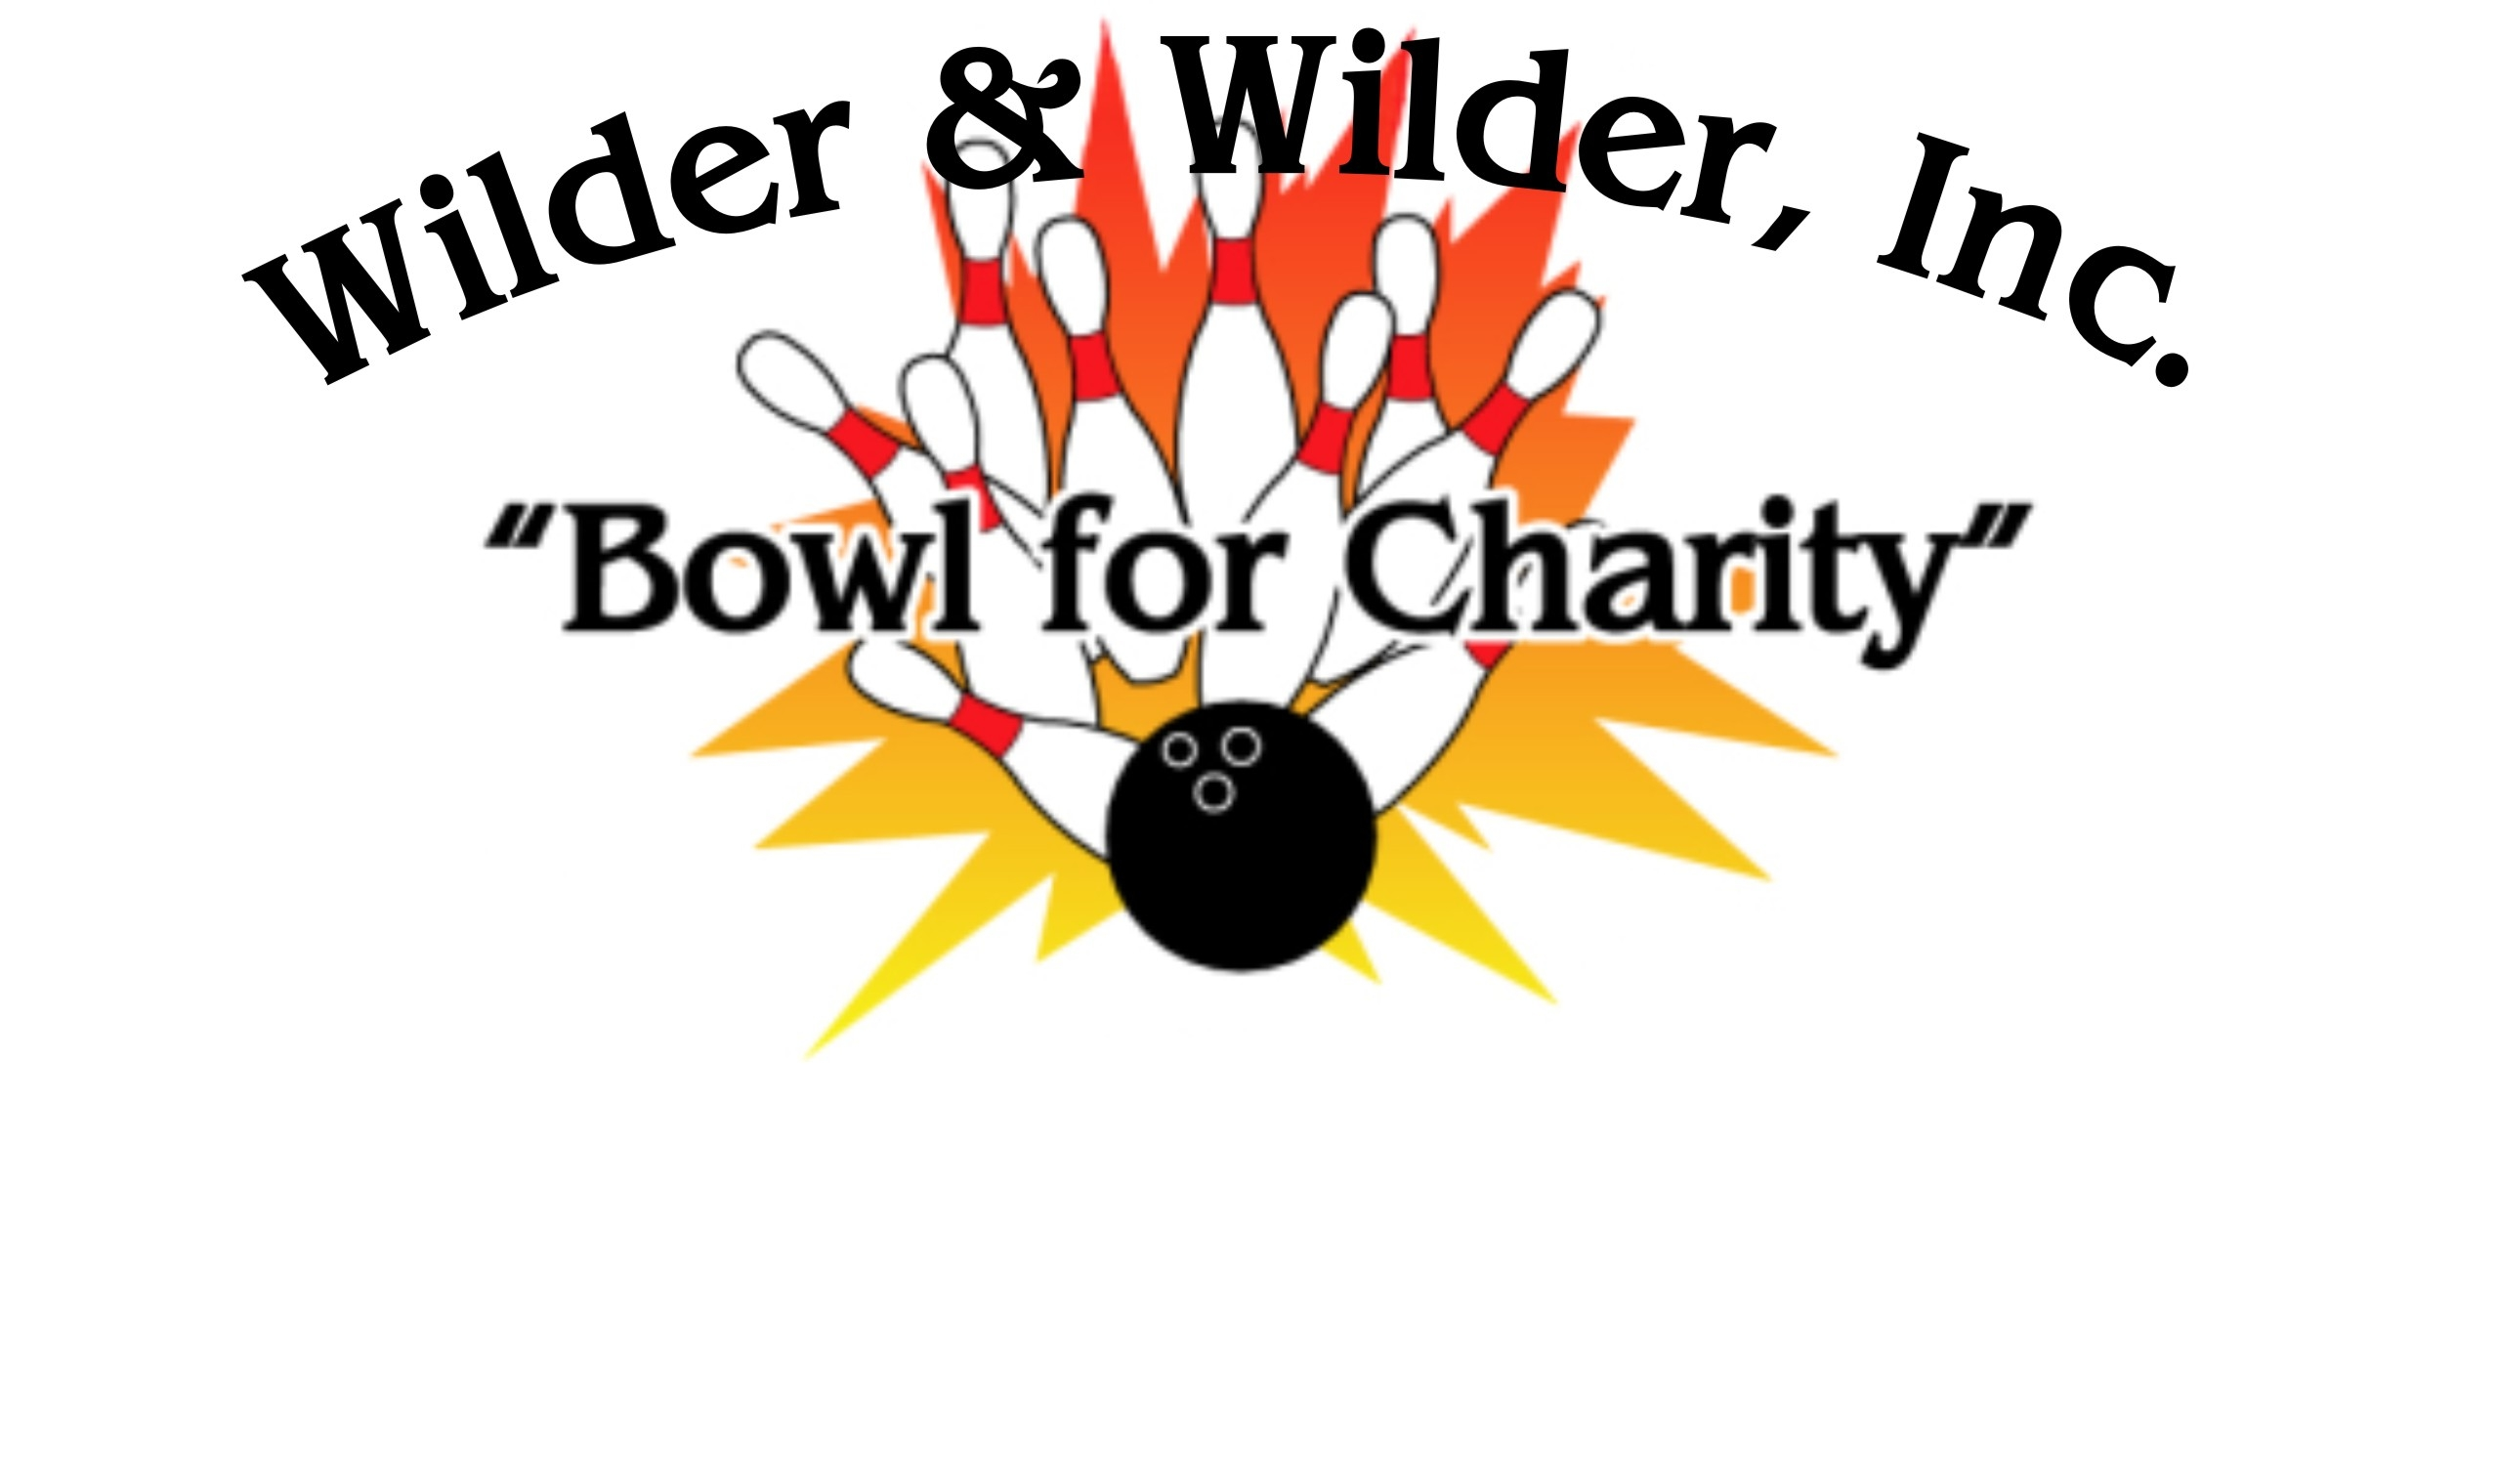 Wilder & Wilder Bowl for Charity